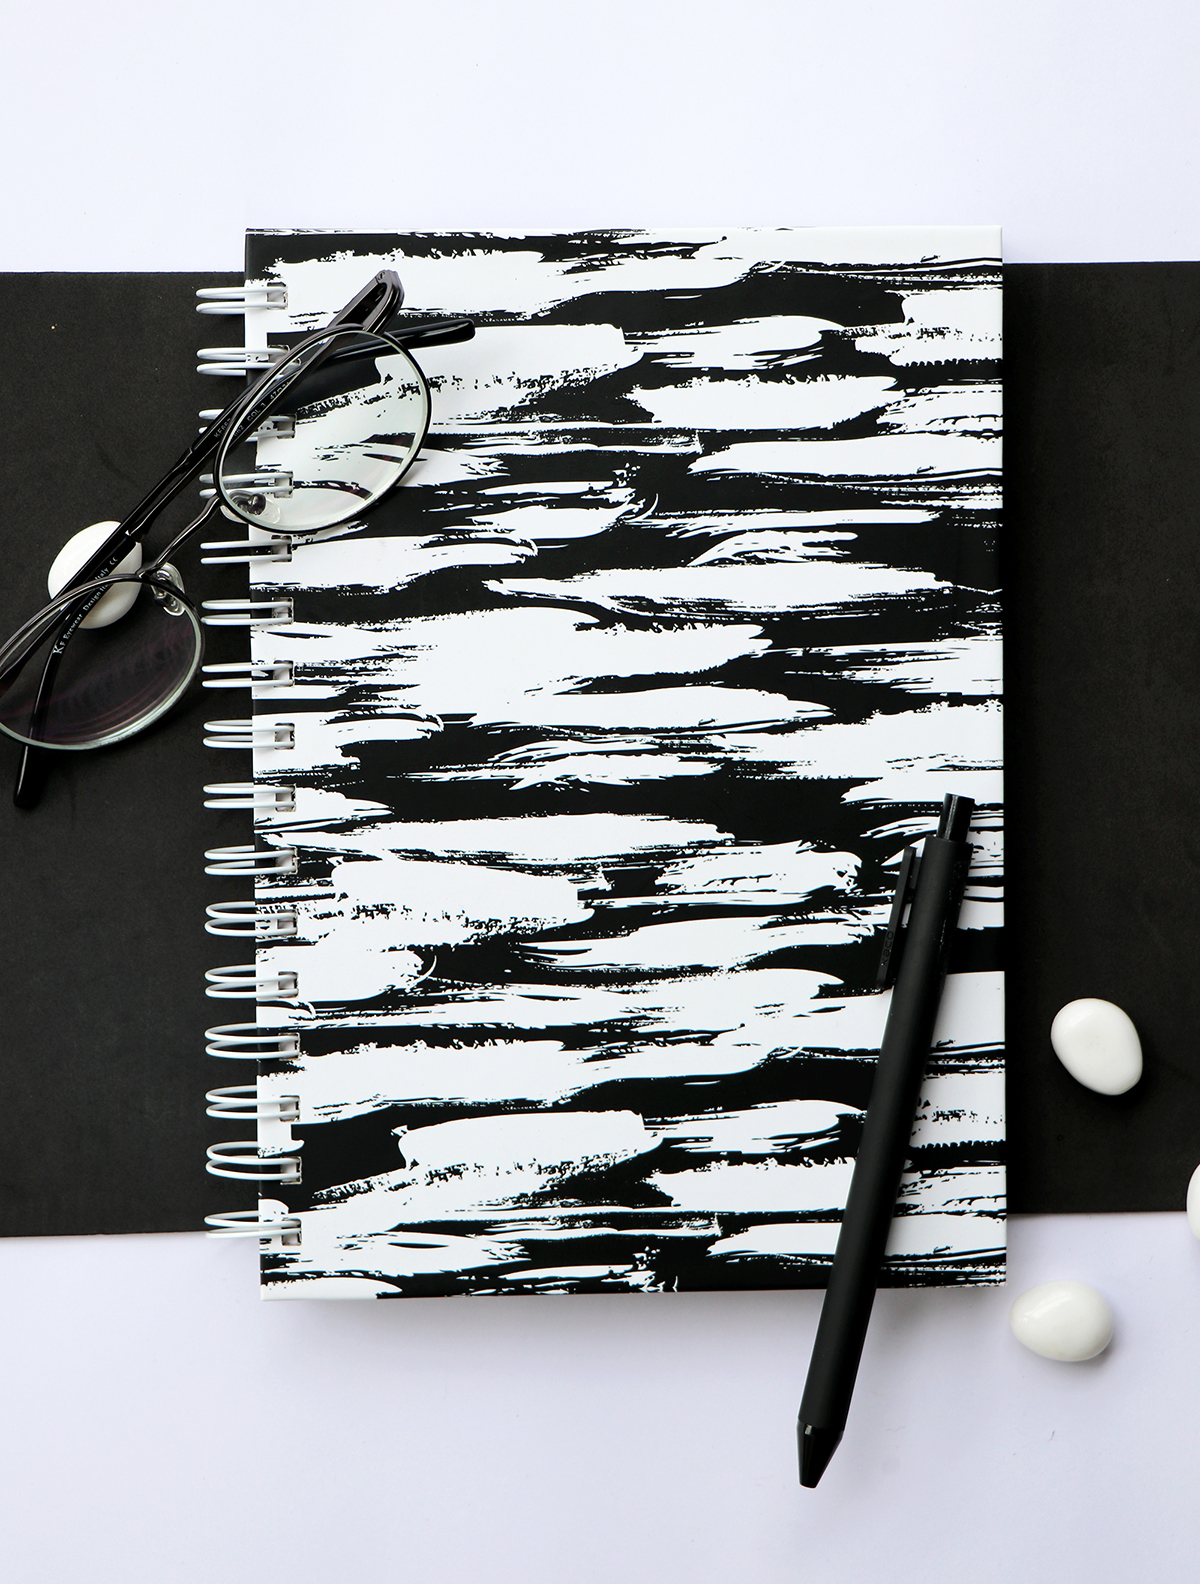 Monochrome Brushstrokes Spiral bound notebook | The Craftables Stationery